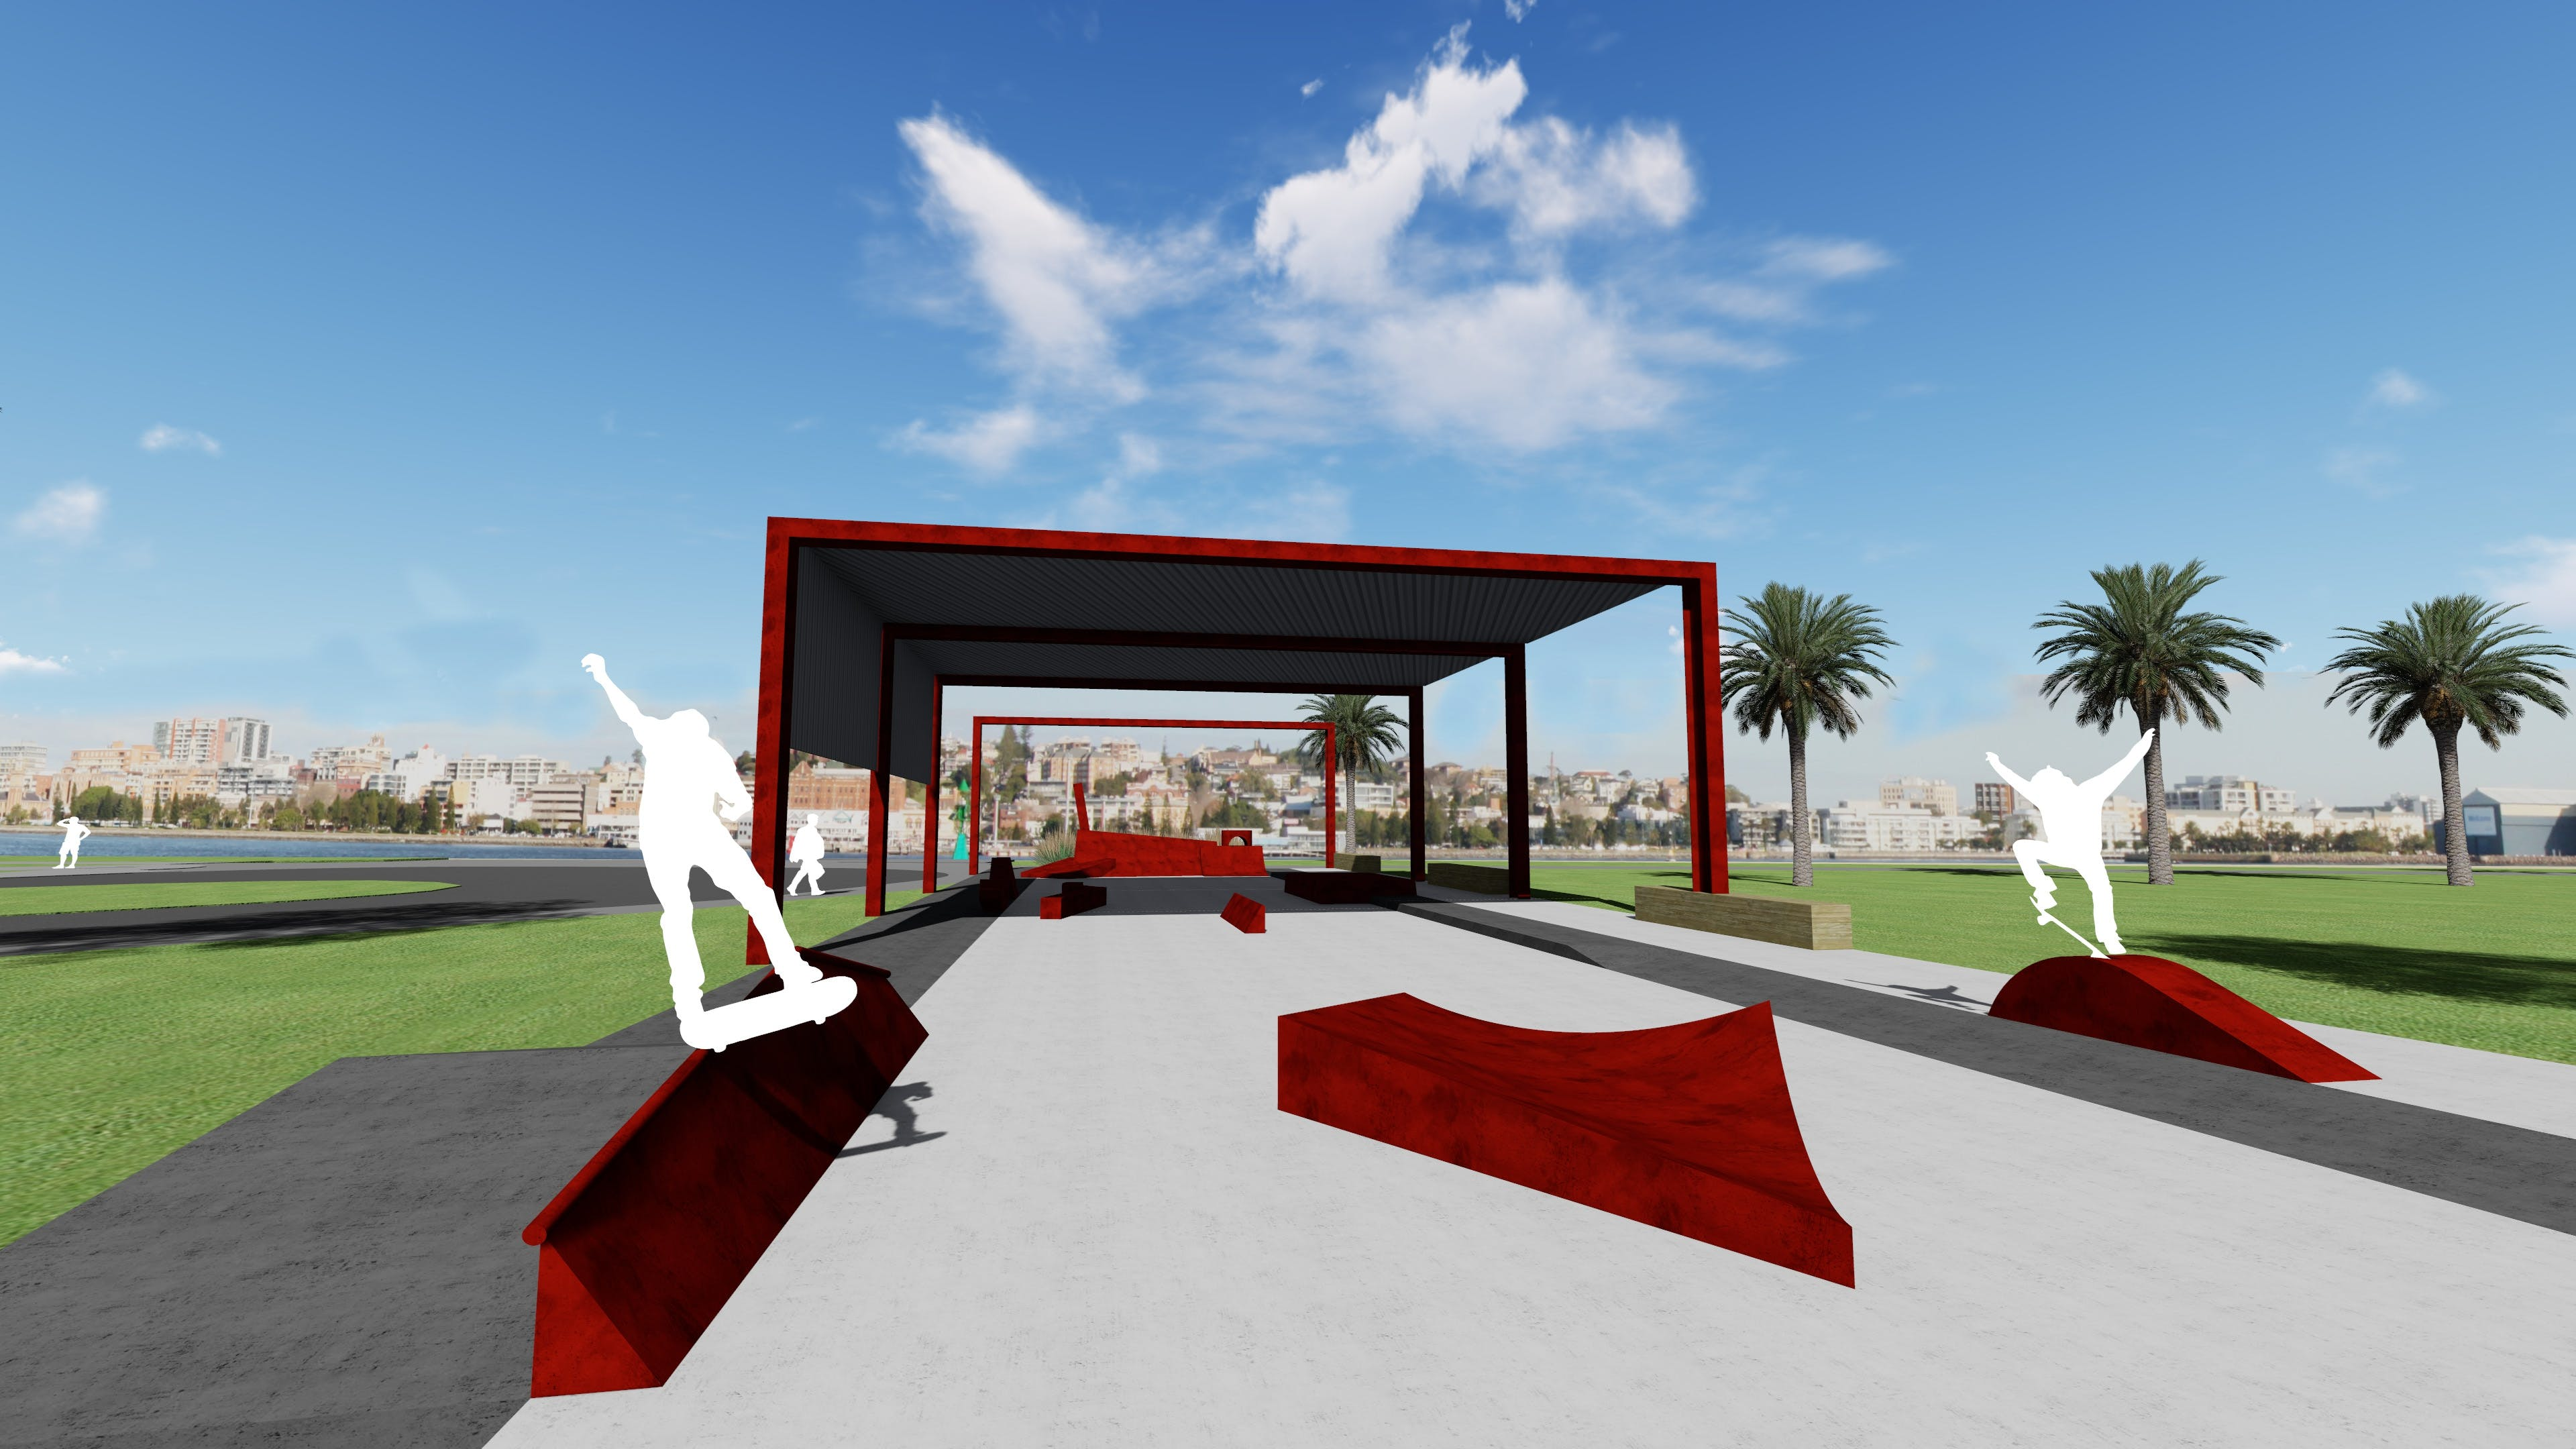 This image shows the proposed skate park section of Stockton South.